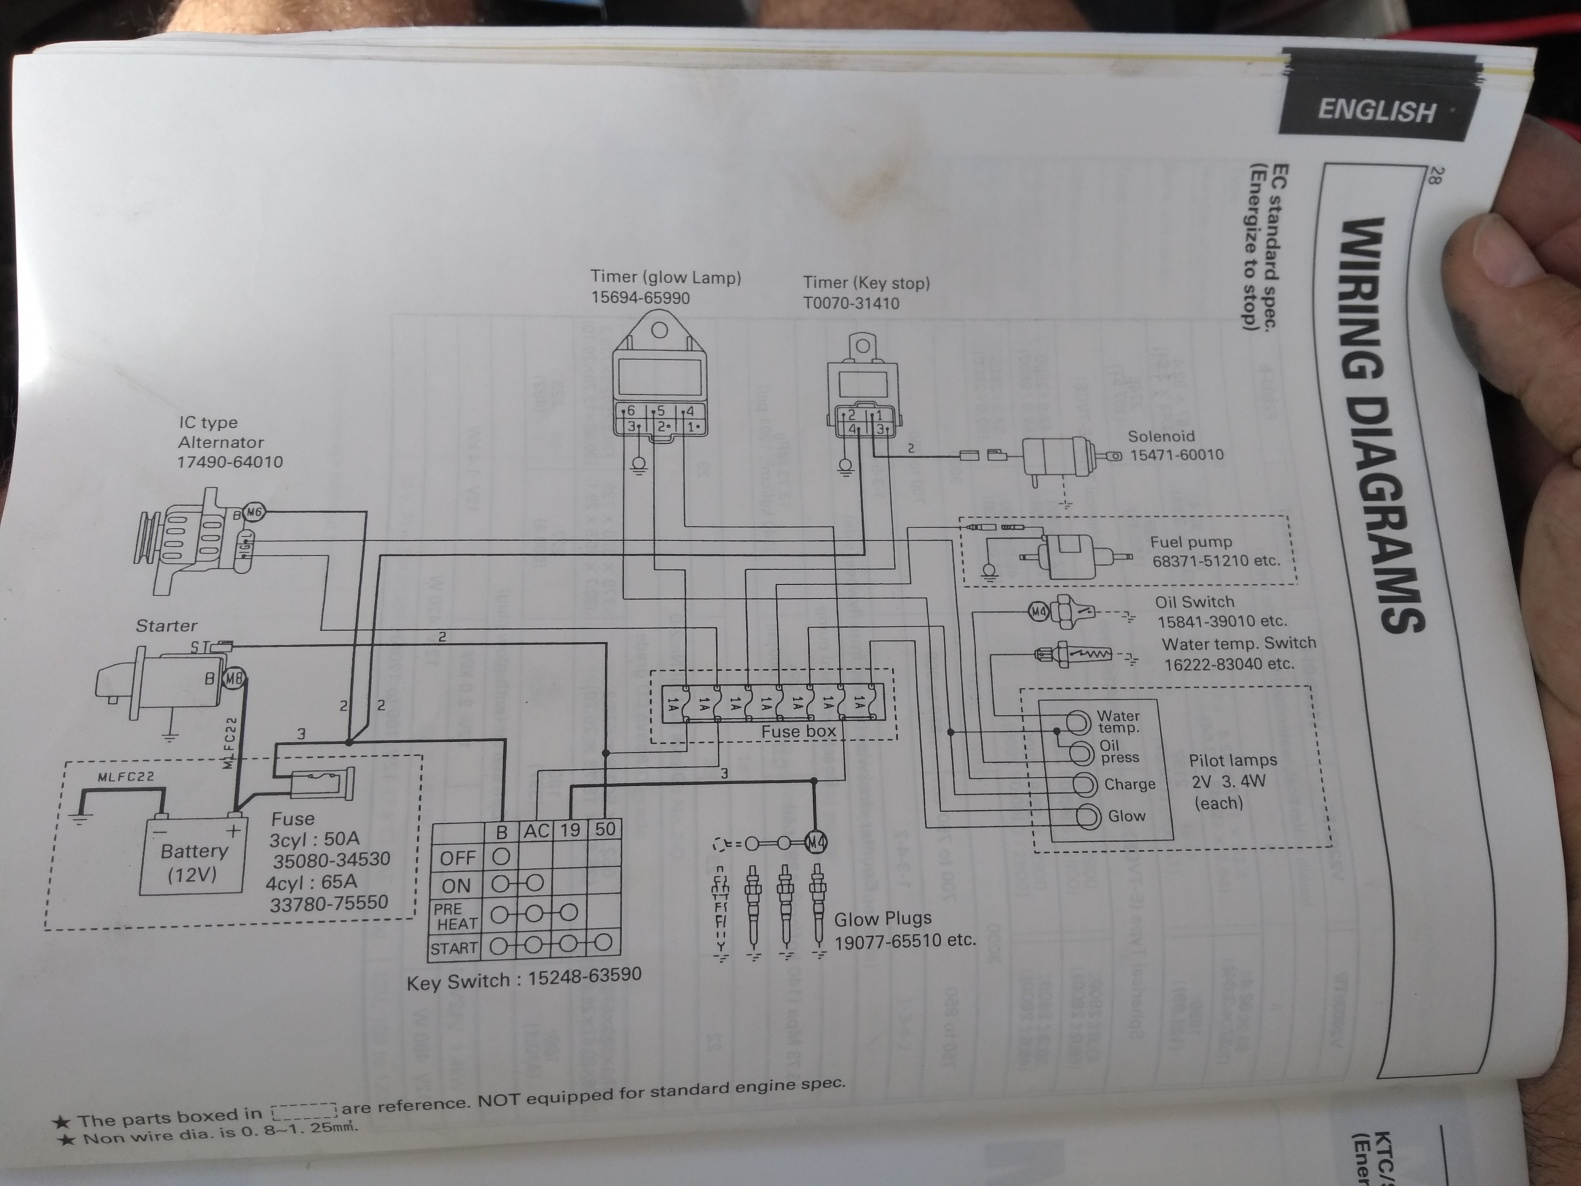 Kubota Alternator Terminals Schematic - Cruisers & Sailing ... on denso 12v fan motor, how alternator works diagram, denso relay cross reference, toyota alternator diagram, ac wiring diagram, dual alternators wiring diagram, vw wiring diagram, starter wiring diagram, denso starter diagram, denso online catalog, car alternator diagram, denso logo, alternator schematic diagram, denso 3 wire altenator, alternator electrical diagram, denso relay diagram, denso compressor cross reference, alternator components diagram, denso connect,